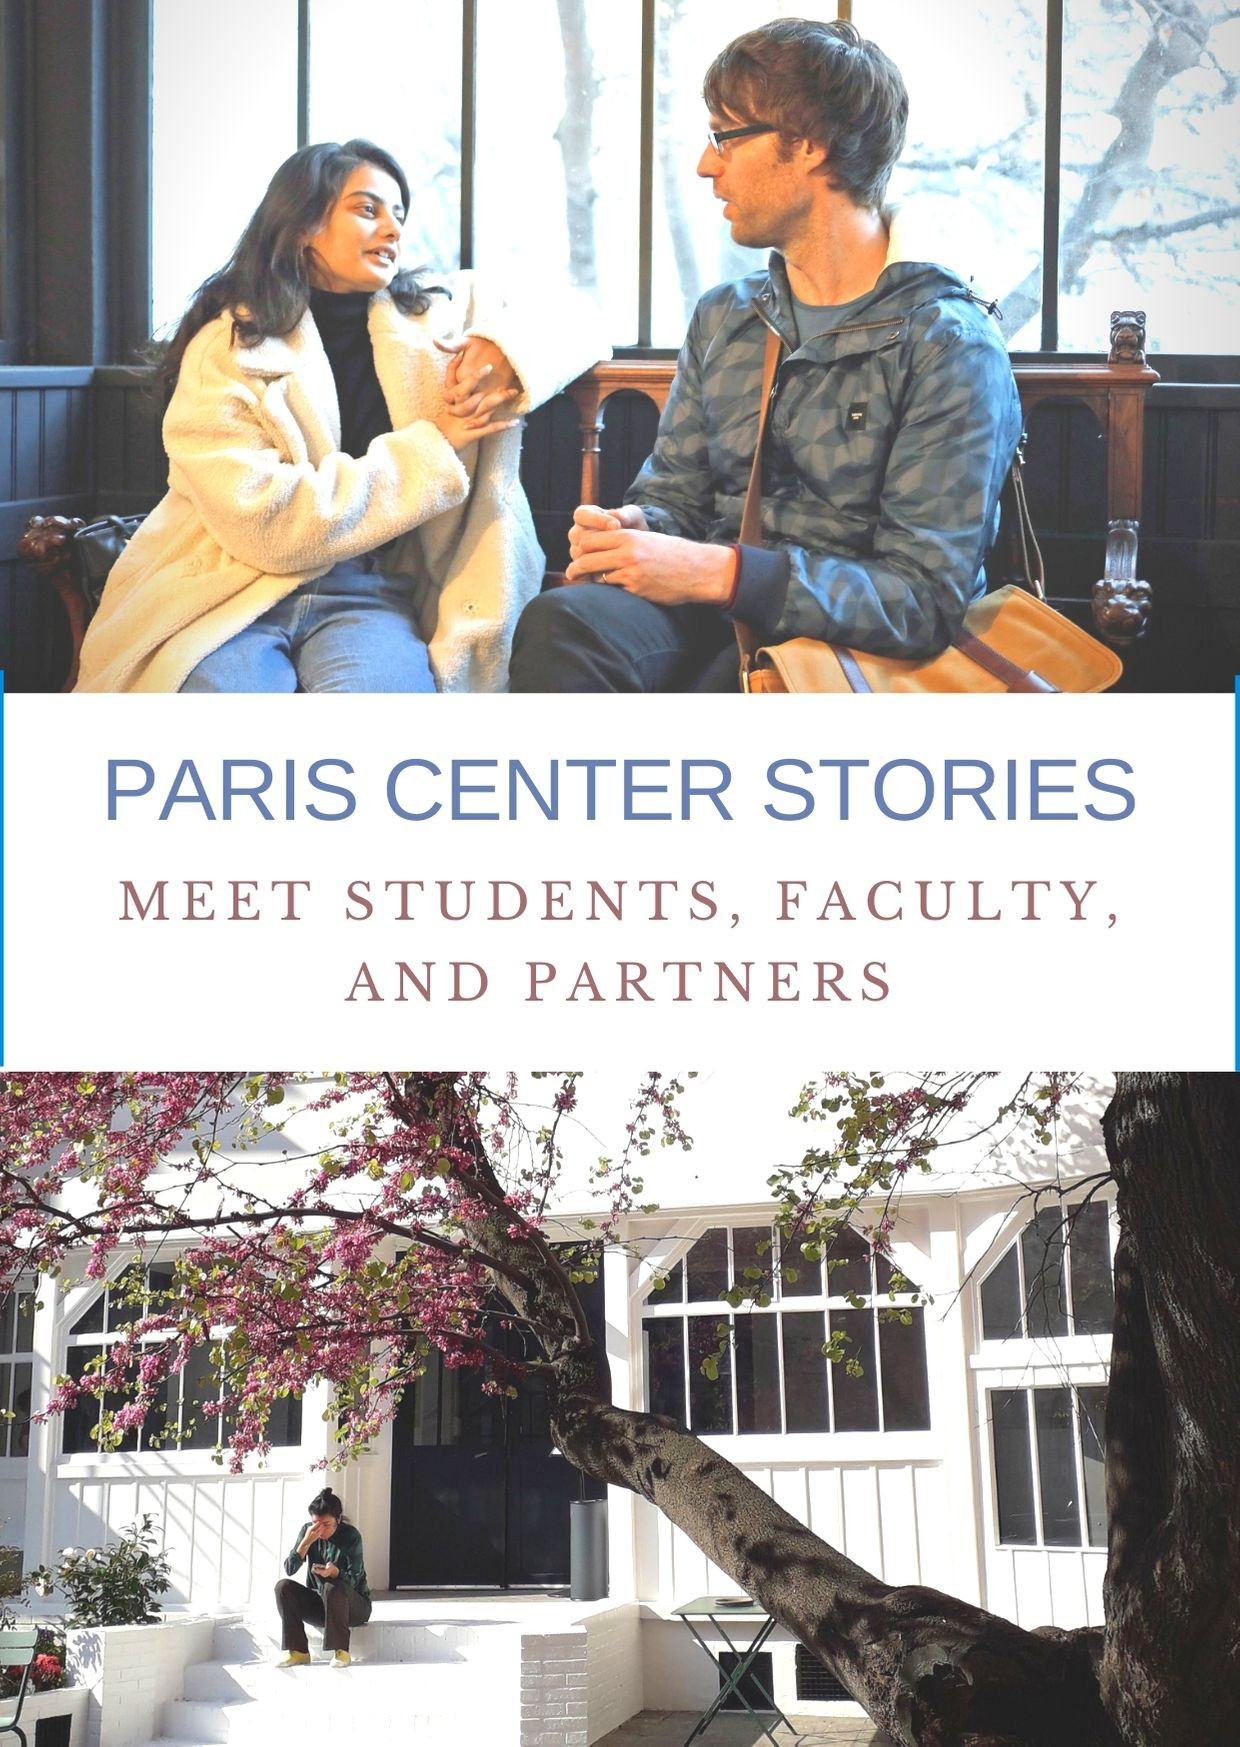 Paris Center Stories